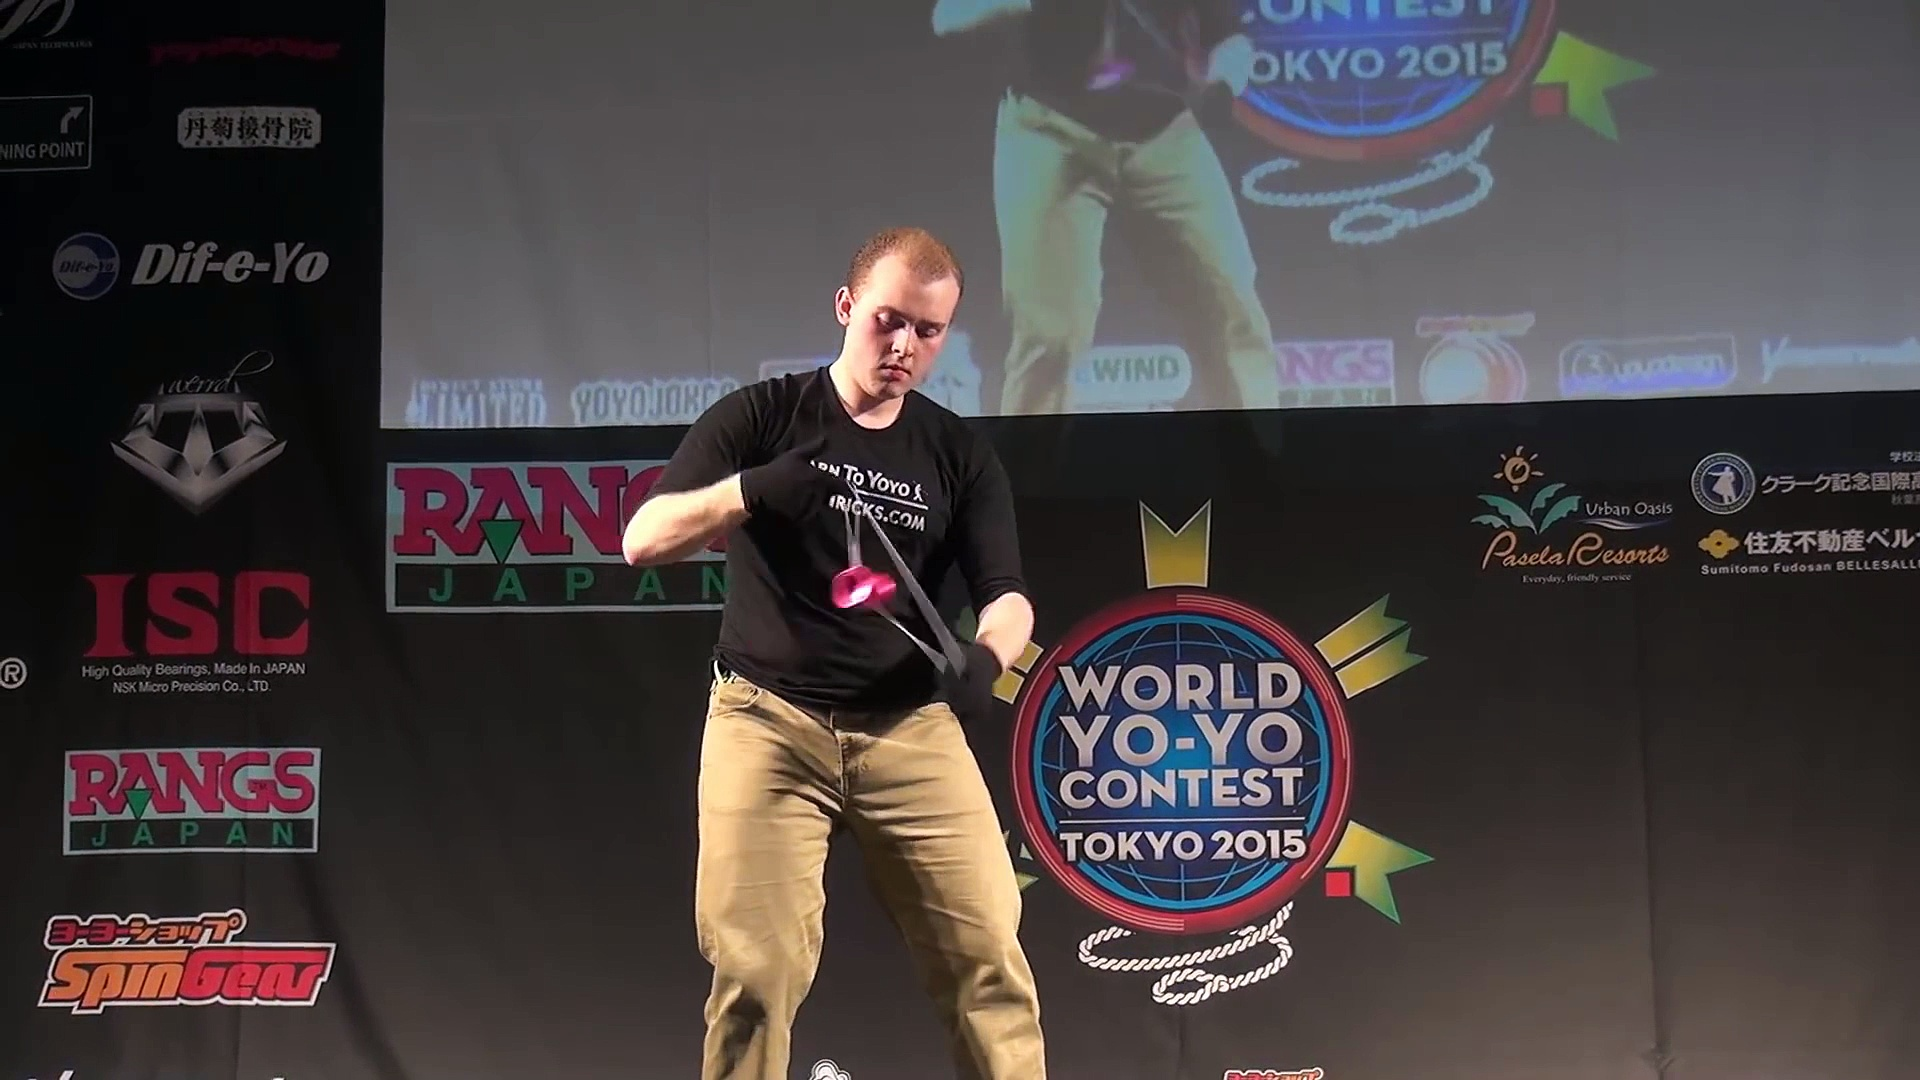 Yoyo champion – The winning routine from the 2015 World Yoyo Contest